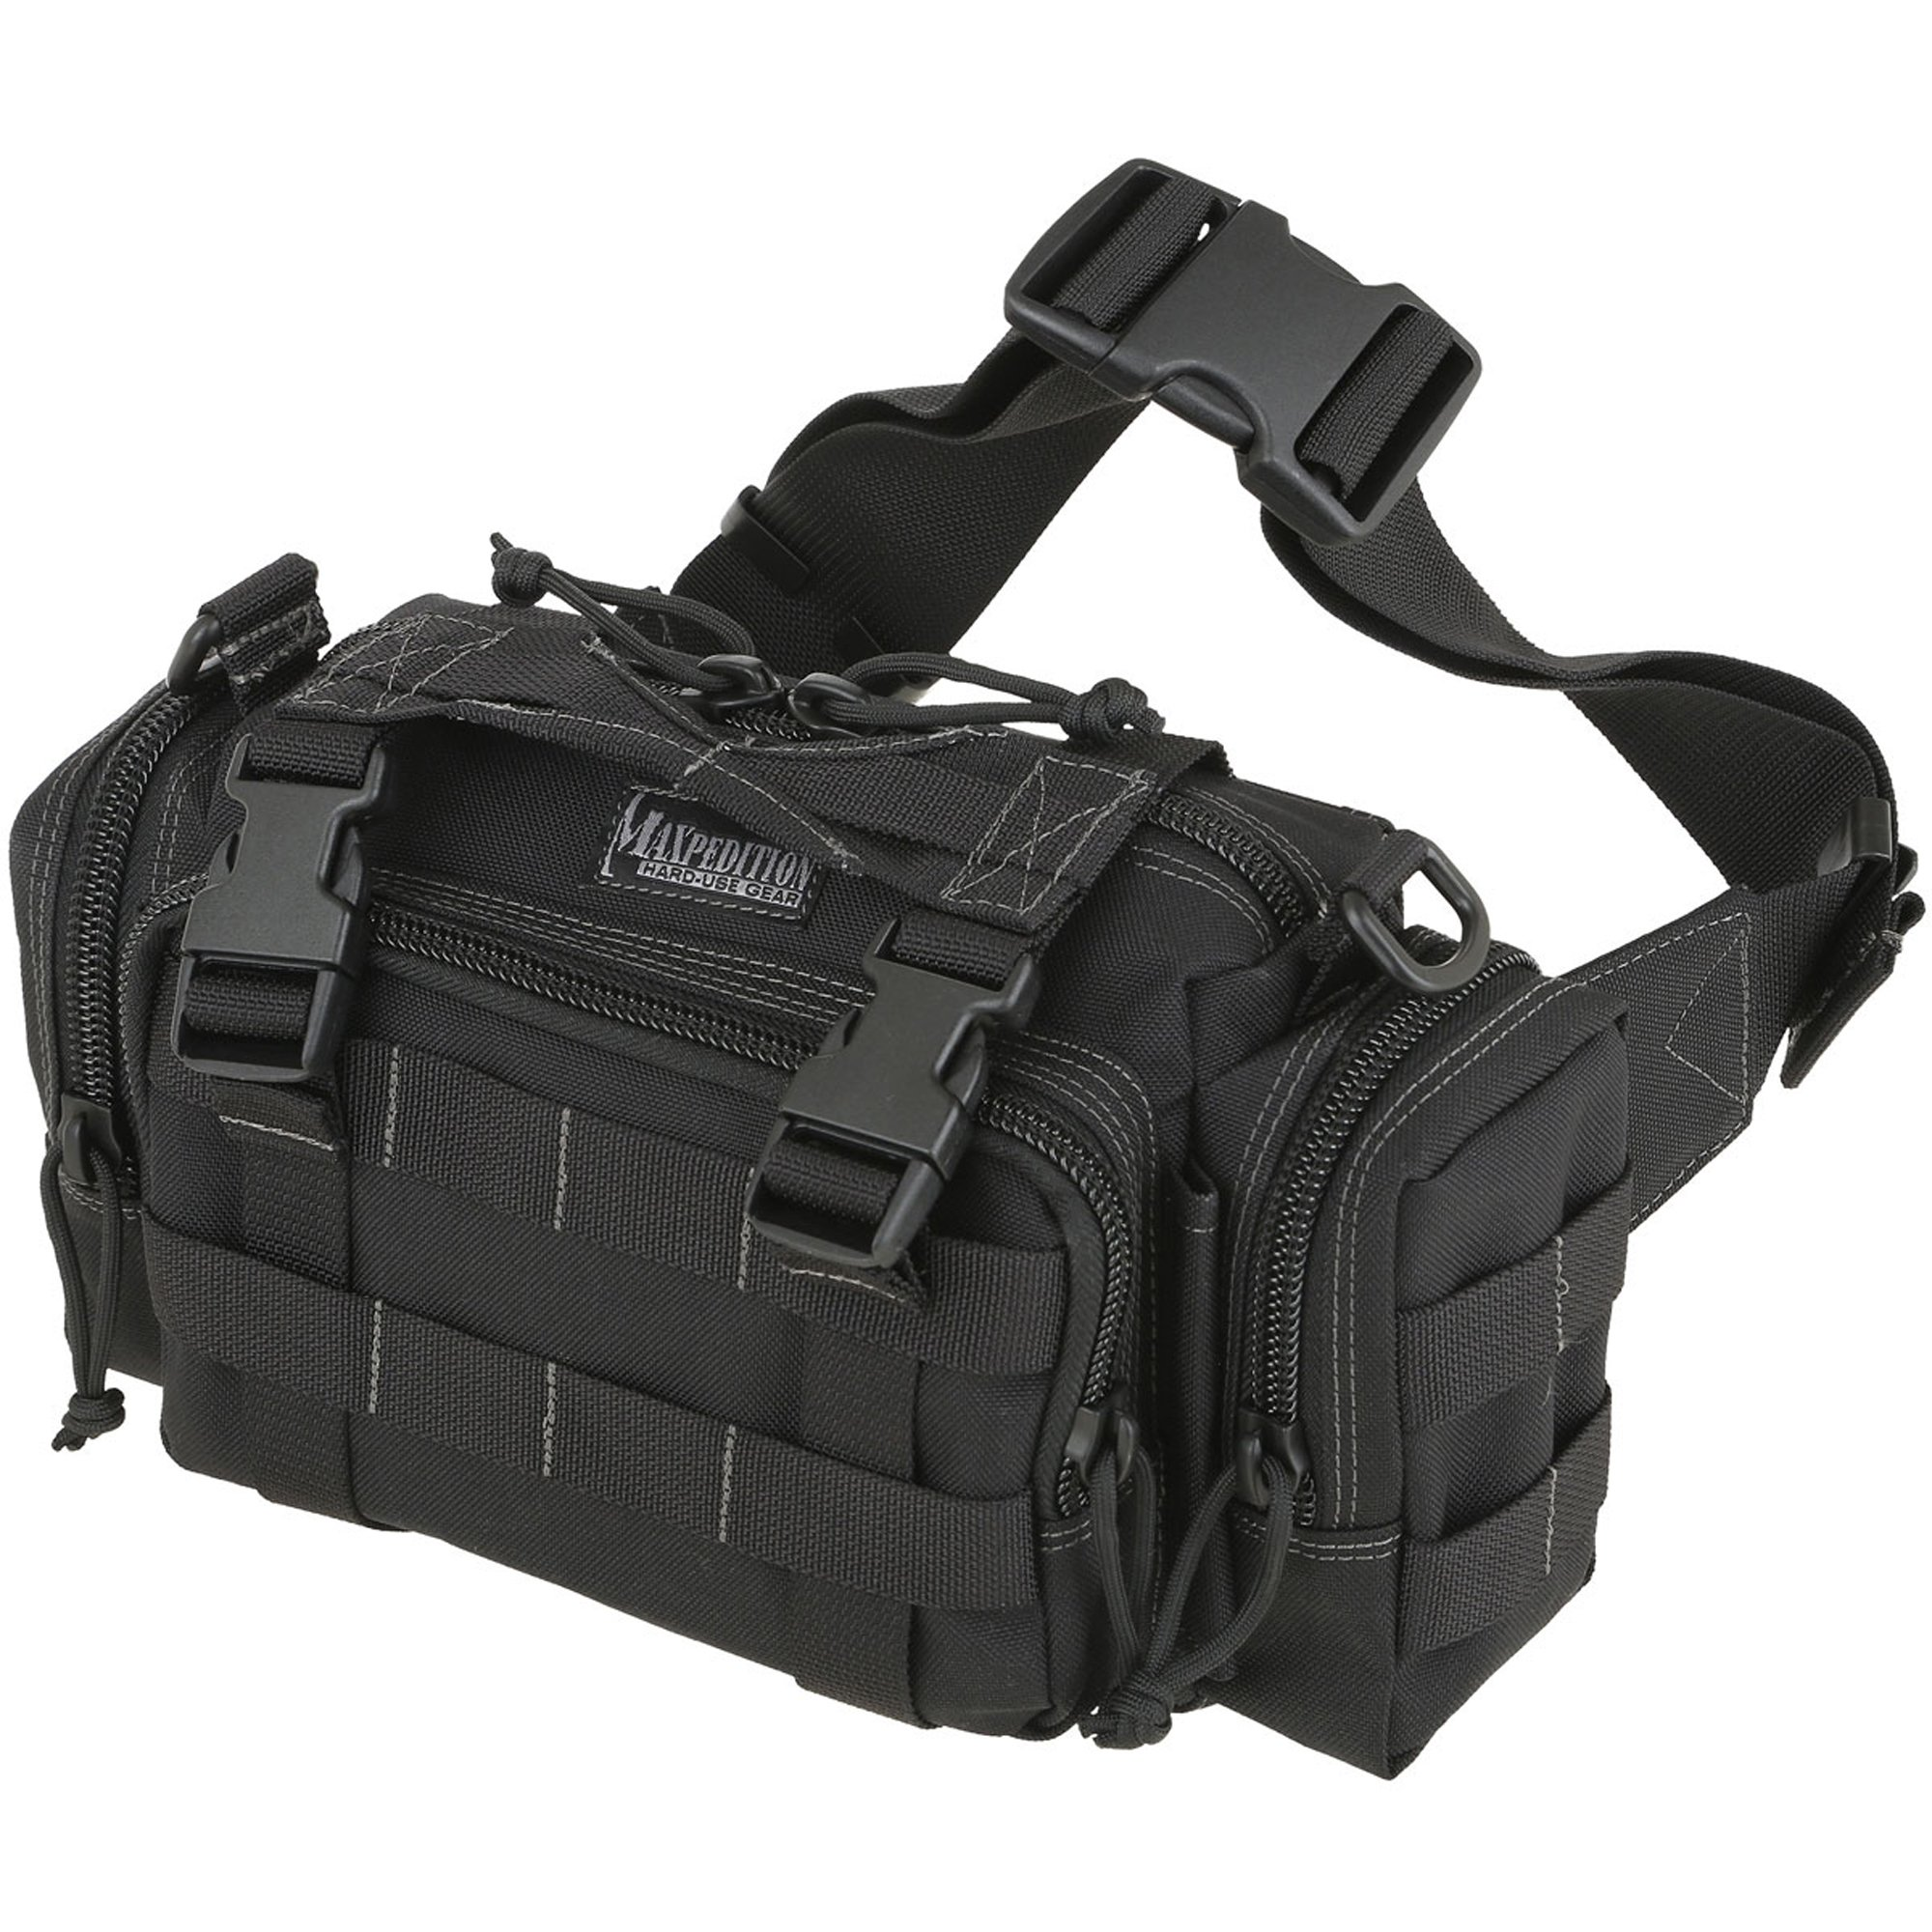 Maxpedition Proteus Versipack, Black by Maxpedition